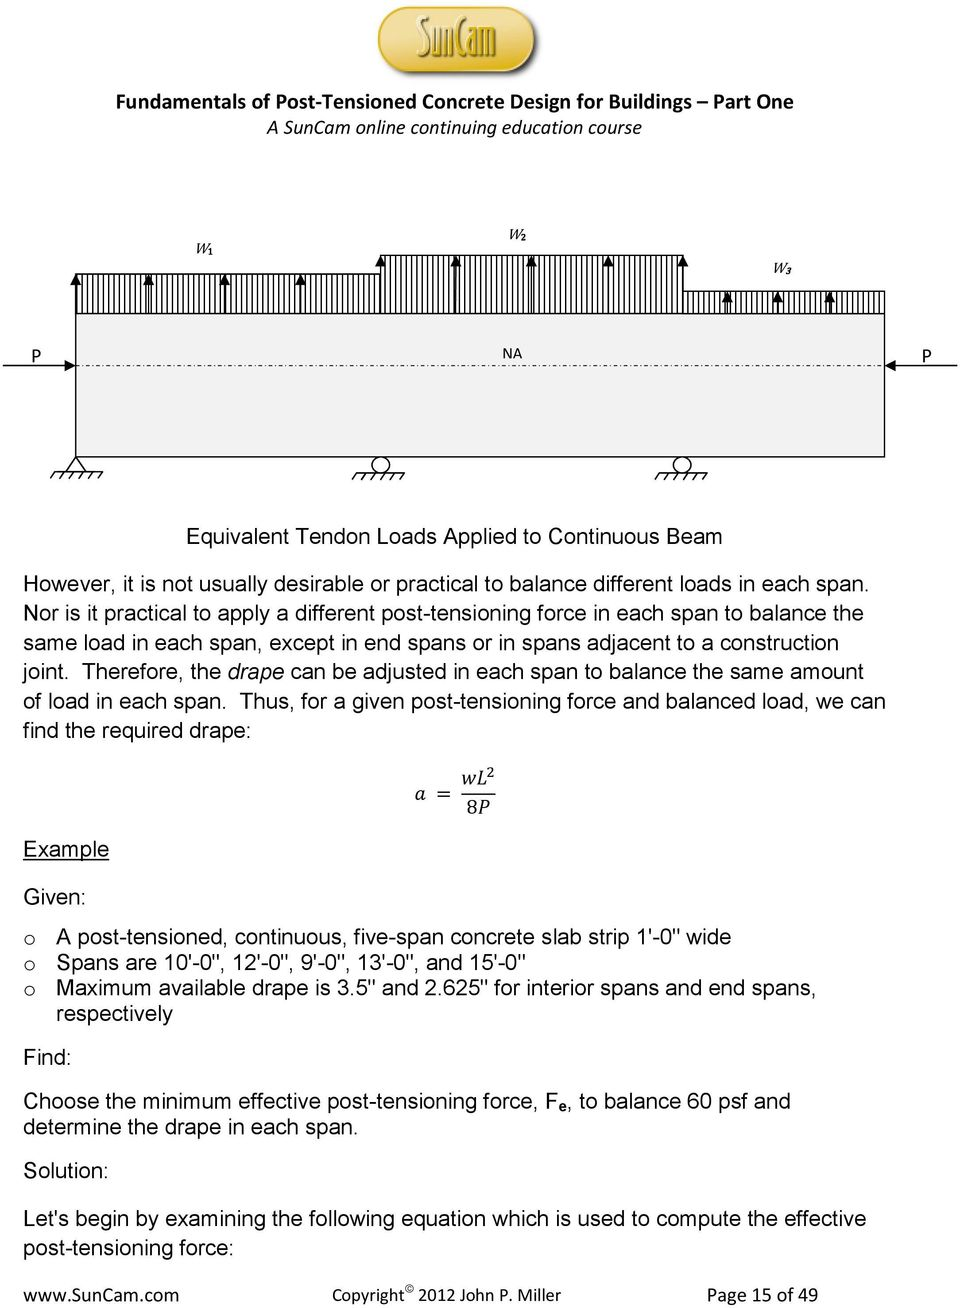 Fundamentals of Post-Tensioned Concrete Design for Buildings